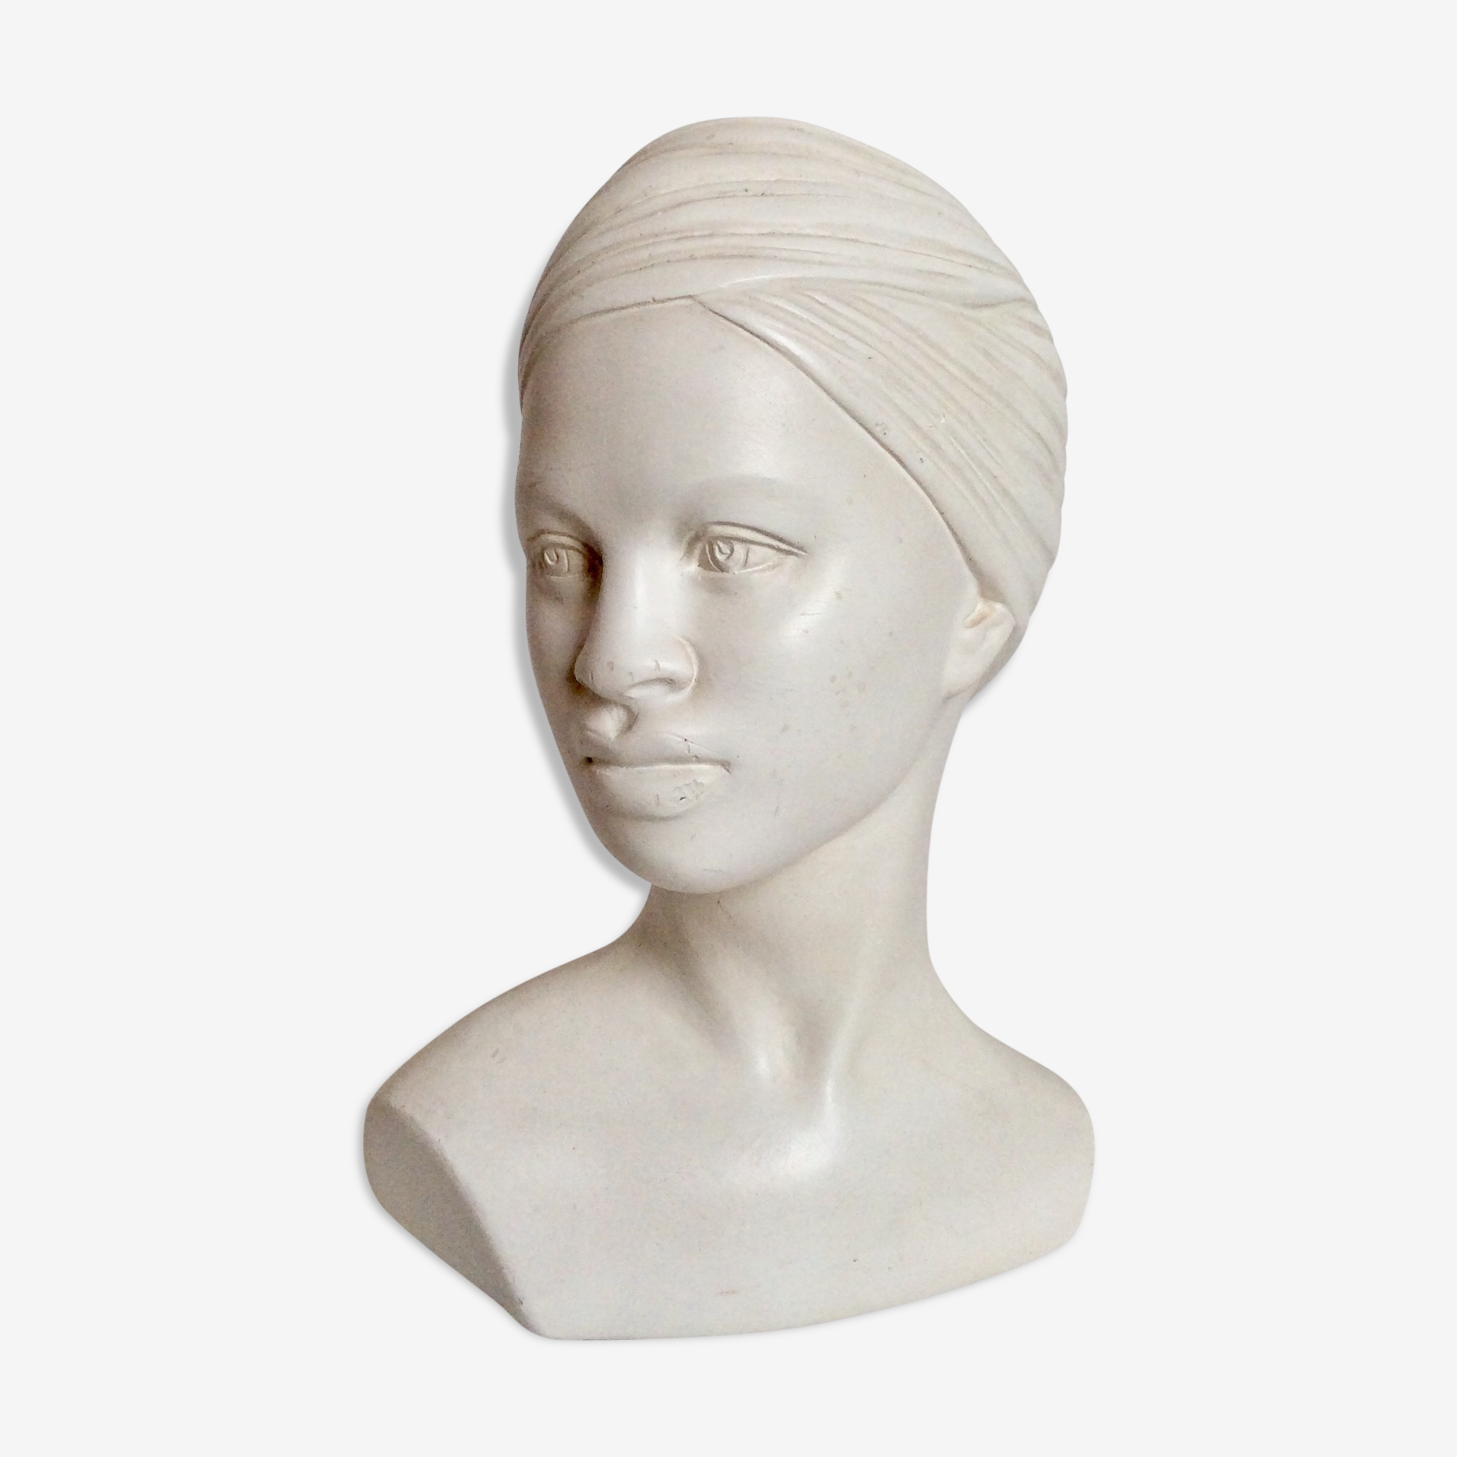 Plaster bust of woman